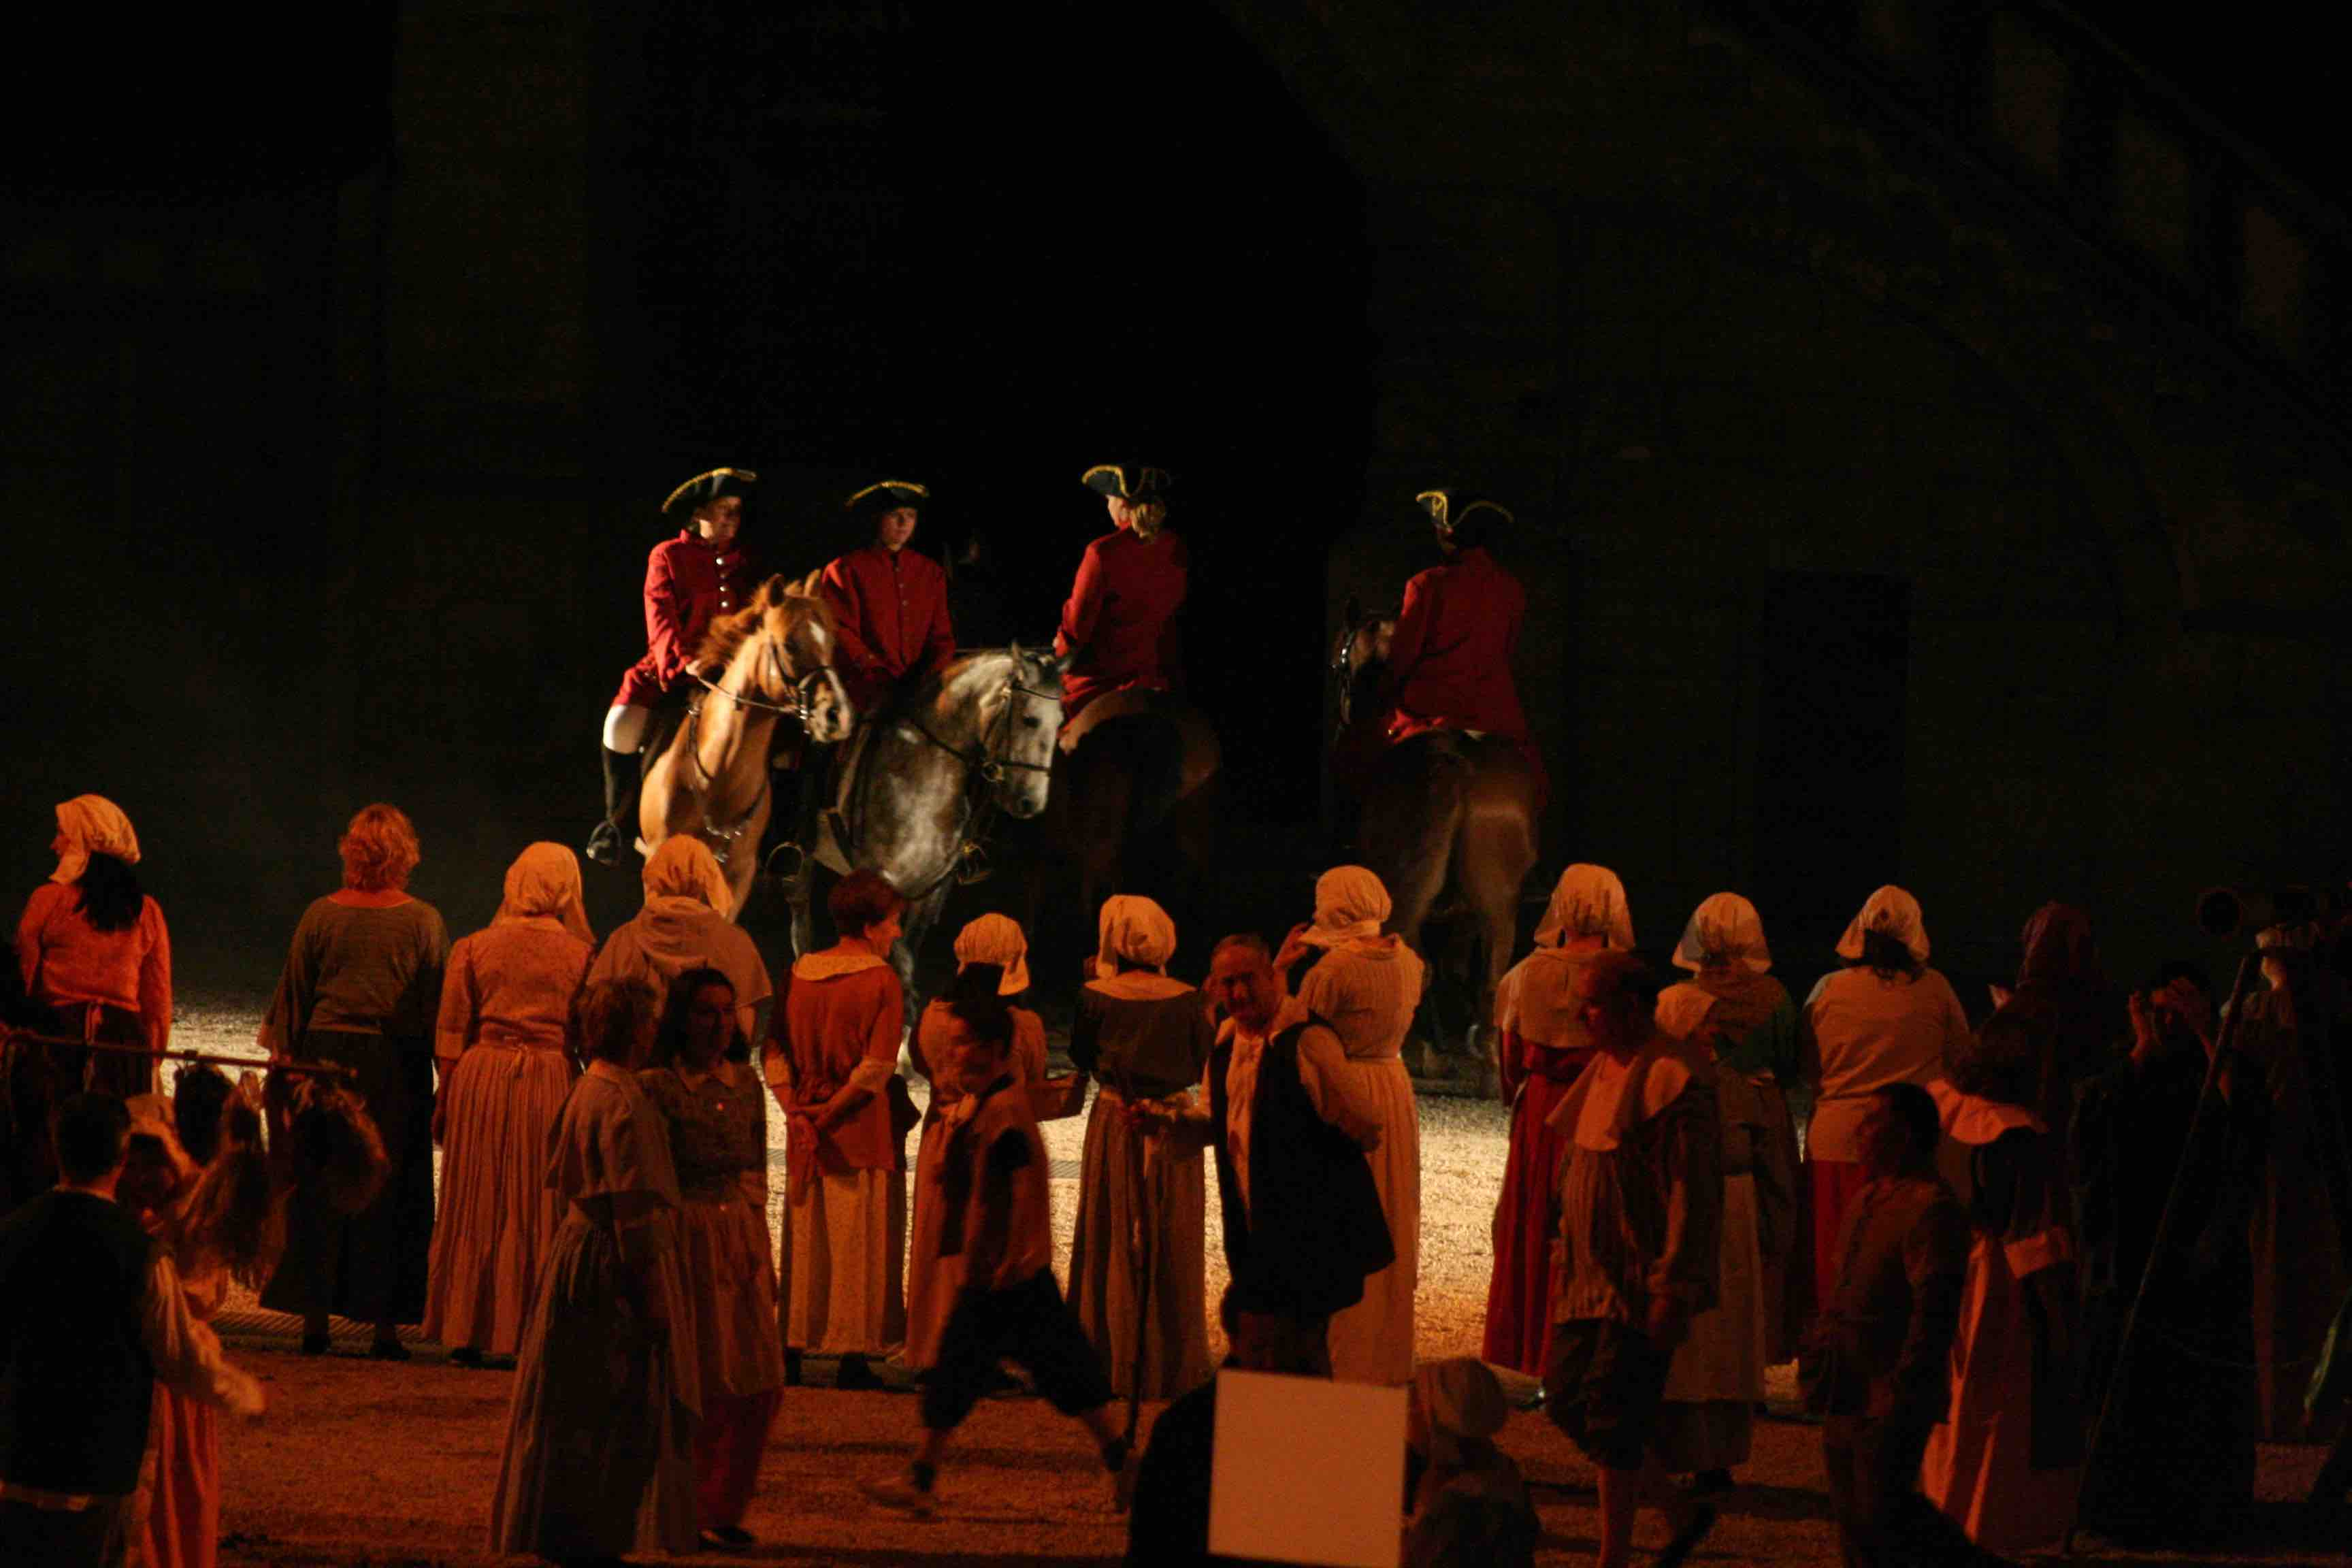 nuit, spectacle, meaux, stephane bern, 77, cheval